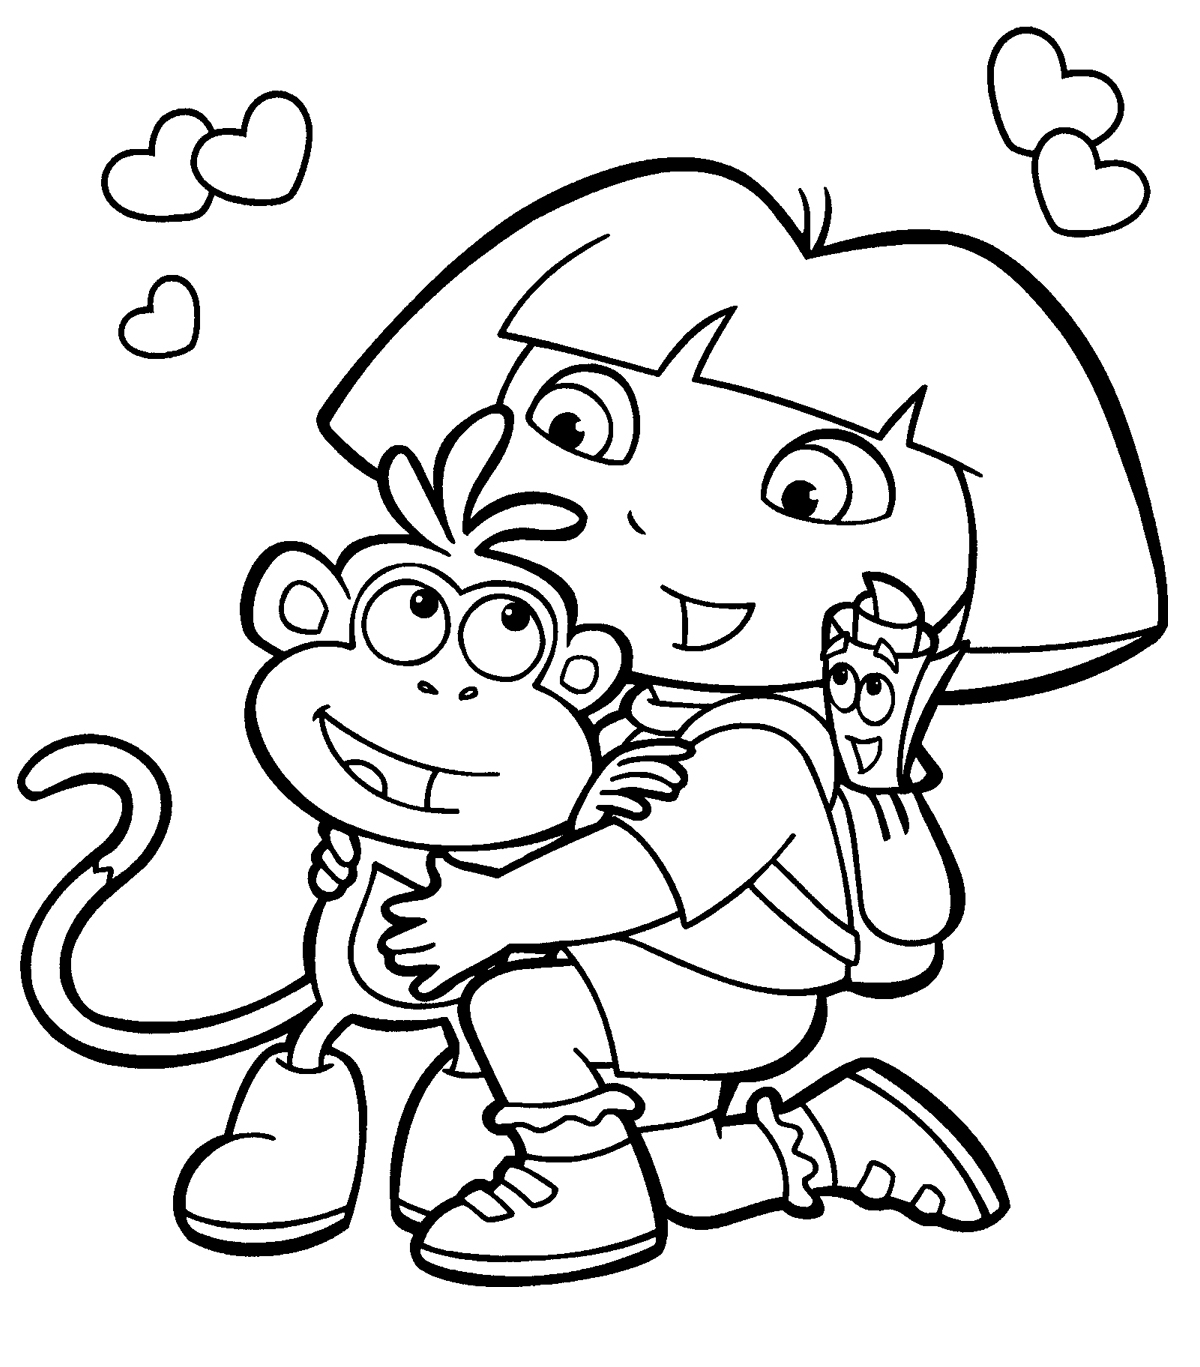 Disney valentine coloring sheets free coloring pages for Disney valentine coloring pages